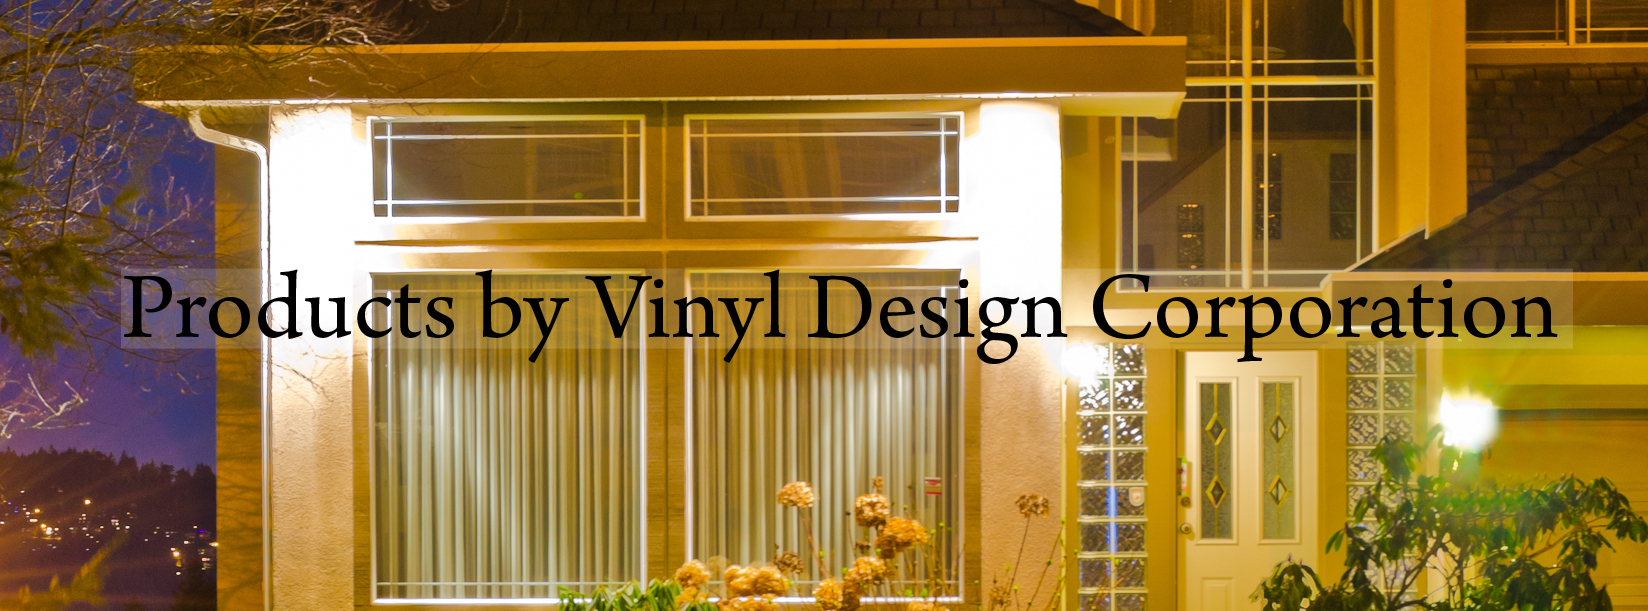 Products by Vinyl Design Corporation